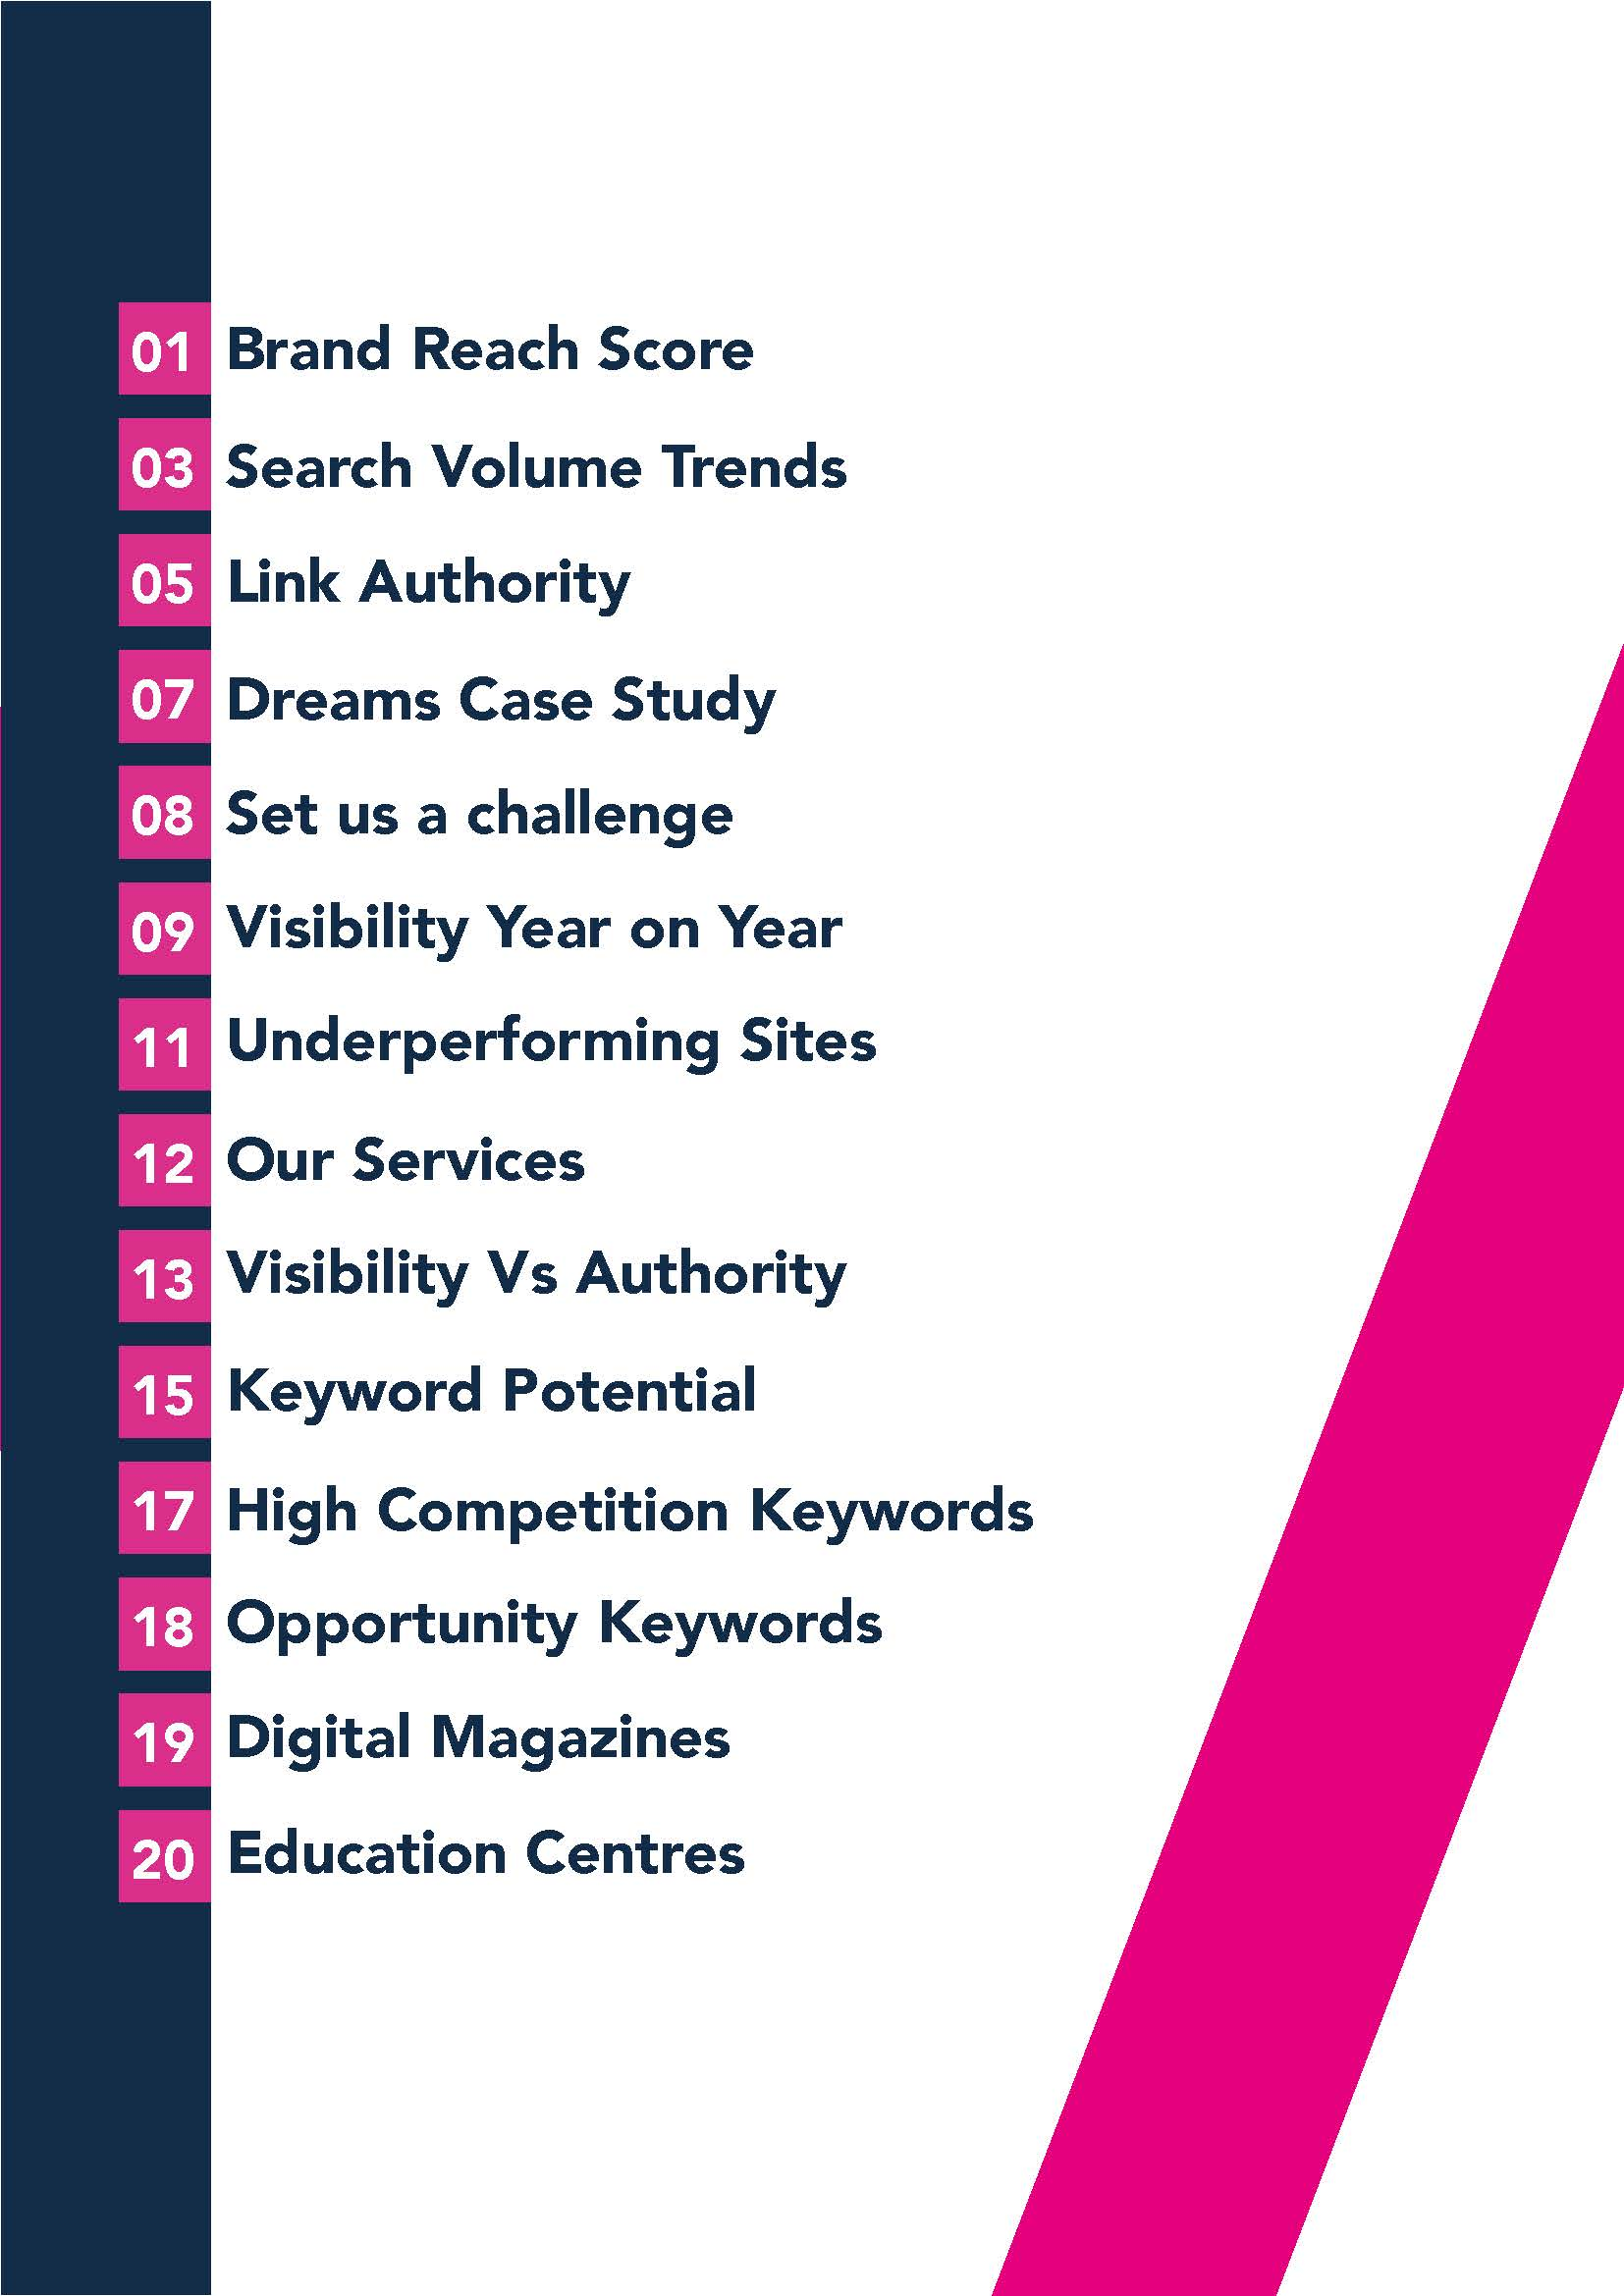 2019 UK Hotel Market Report contents page